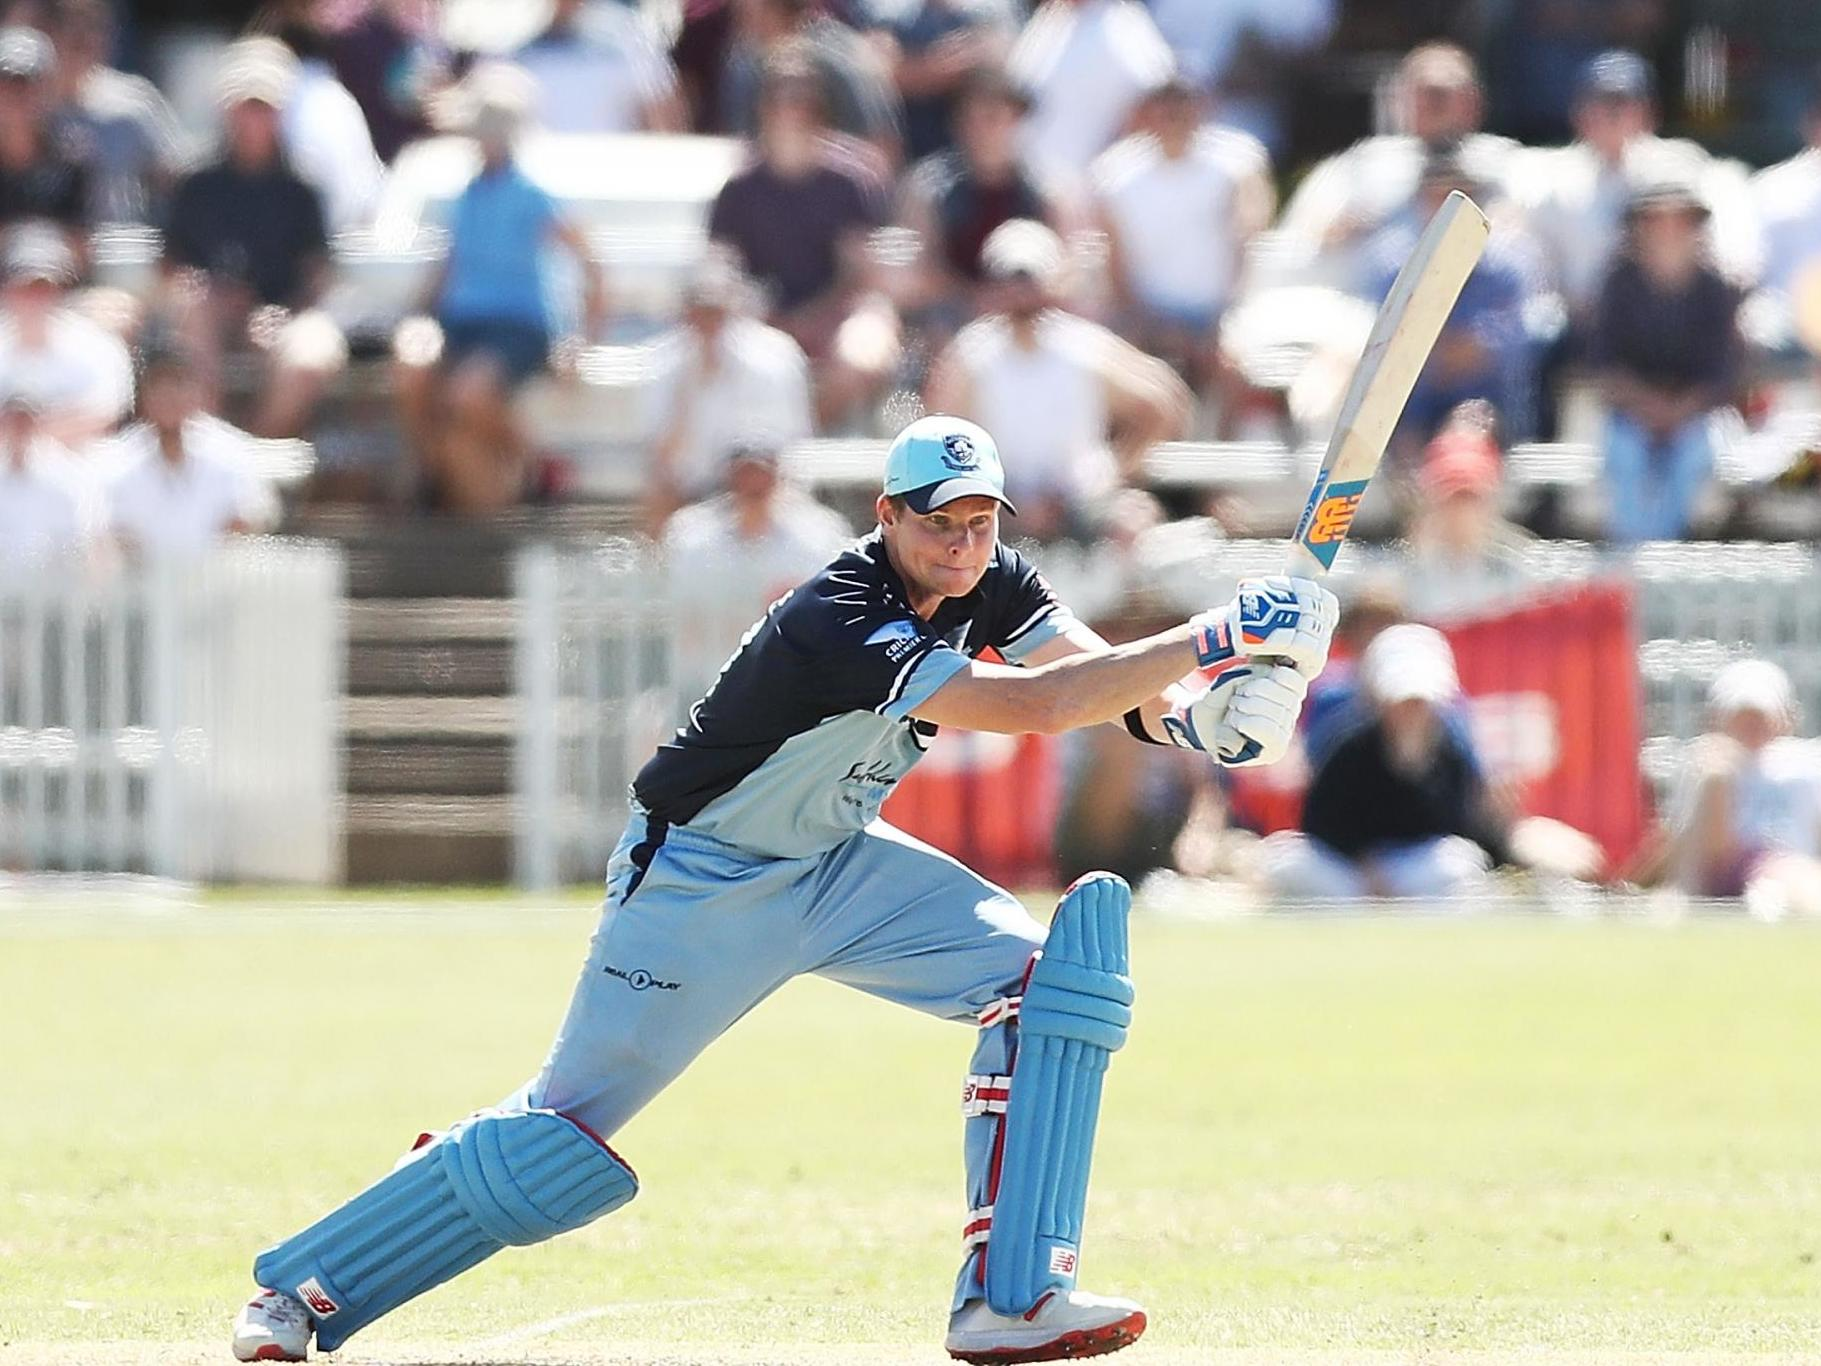 The Hundred 2019: Ashes star Steve Smith tops list of overseas stars set for inaugural draft